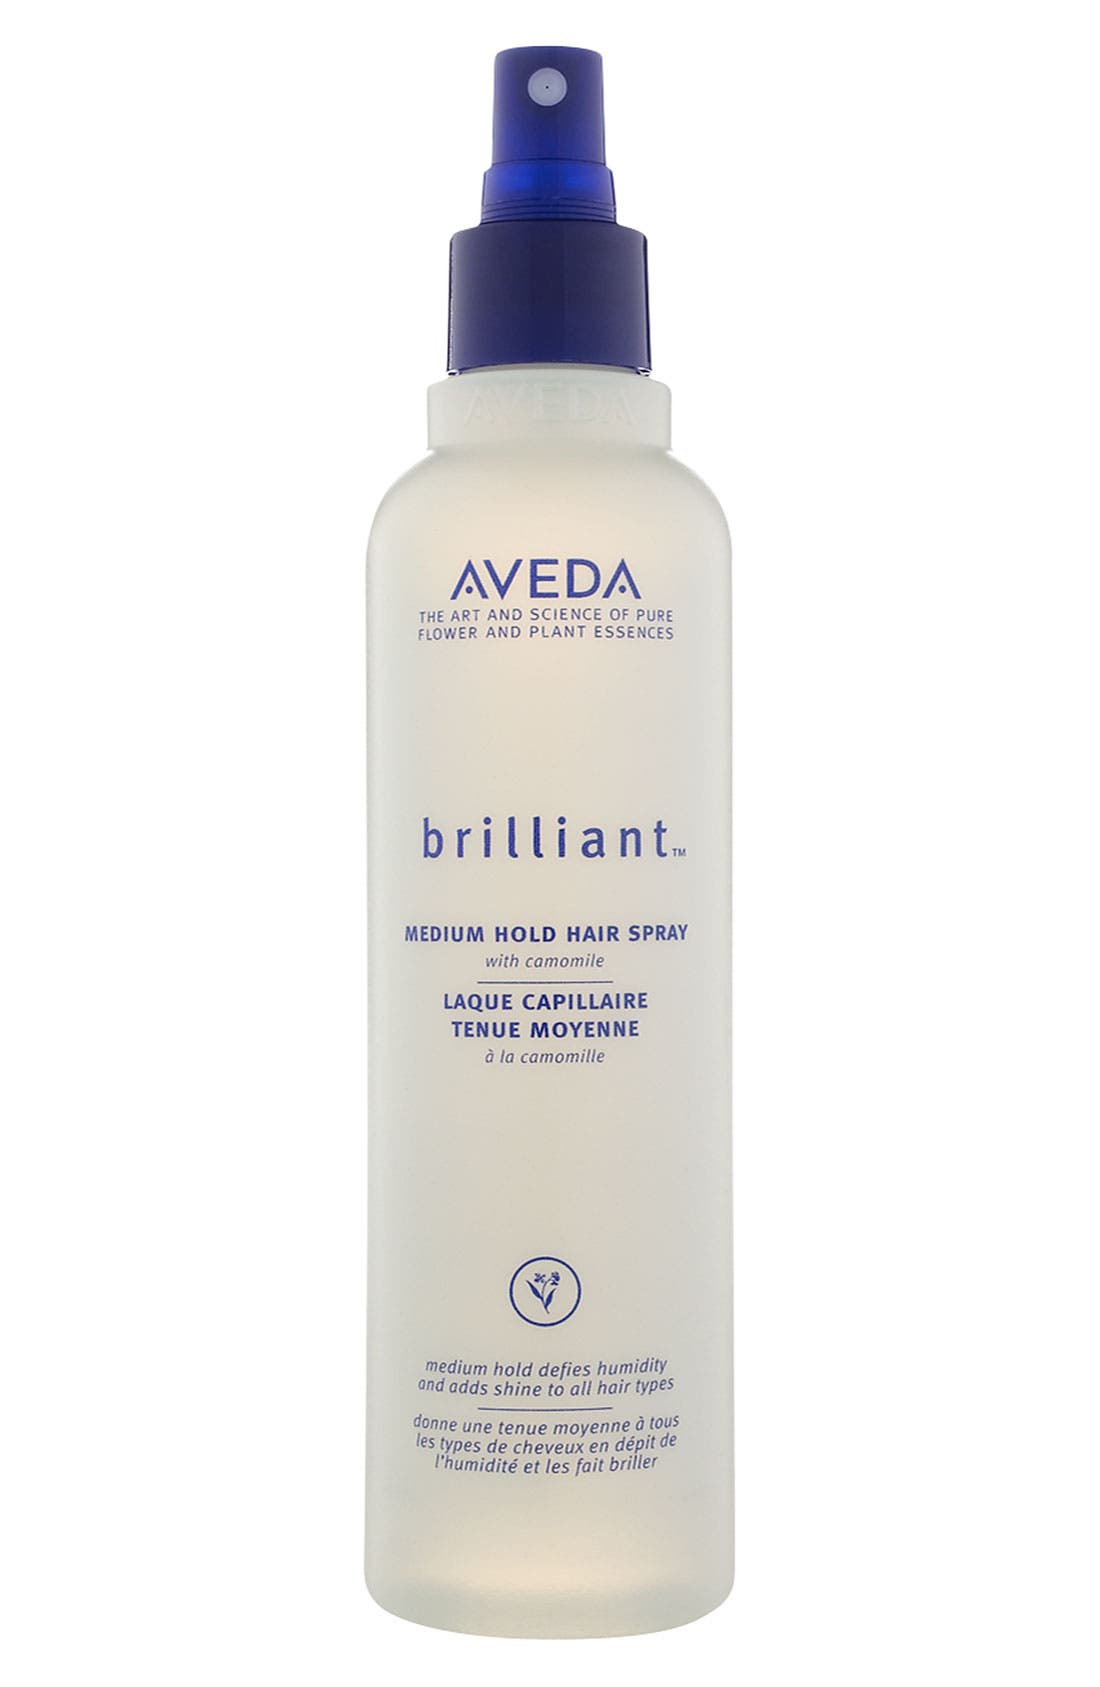 AVEDA,                             brilliant<sup>™</sup> Medium Hold Hair Spray,                             Main thumbnail 1, color,                             NO COLOR